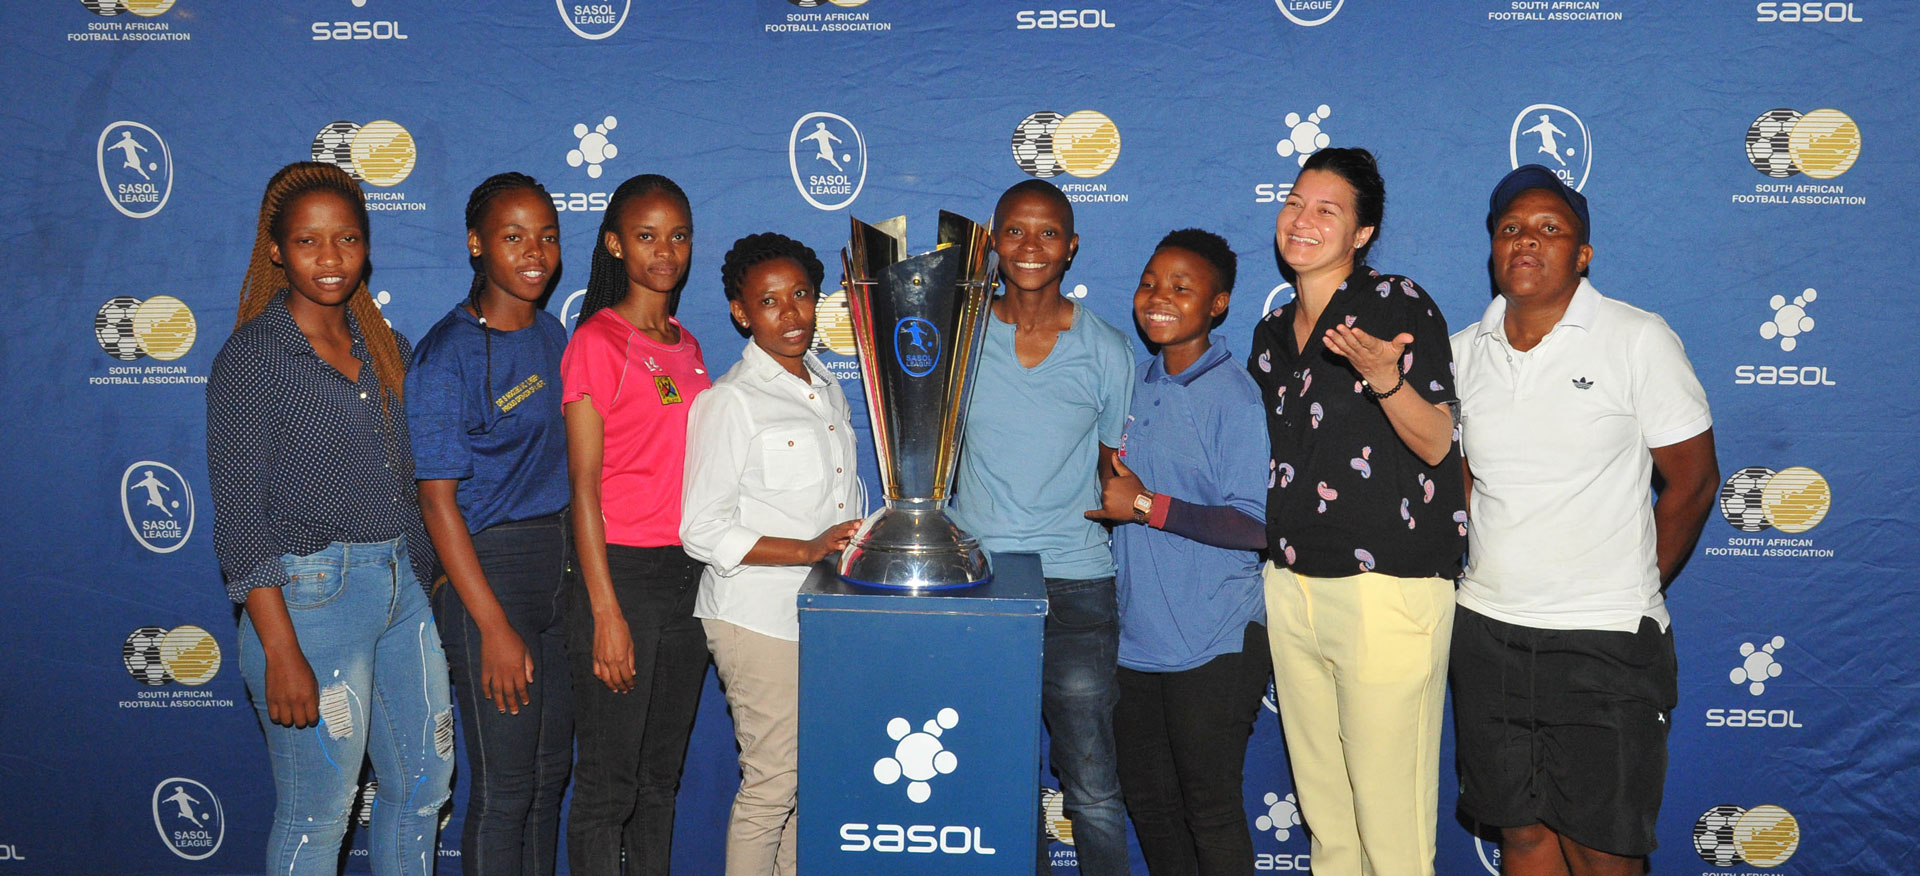 Sasol league team captains with the championship trophy